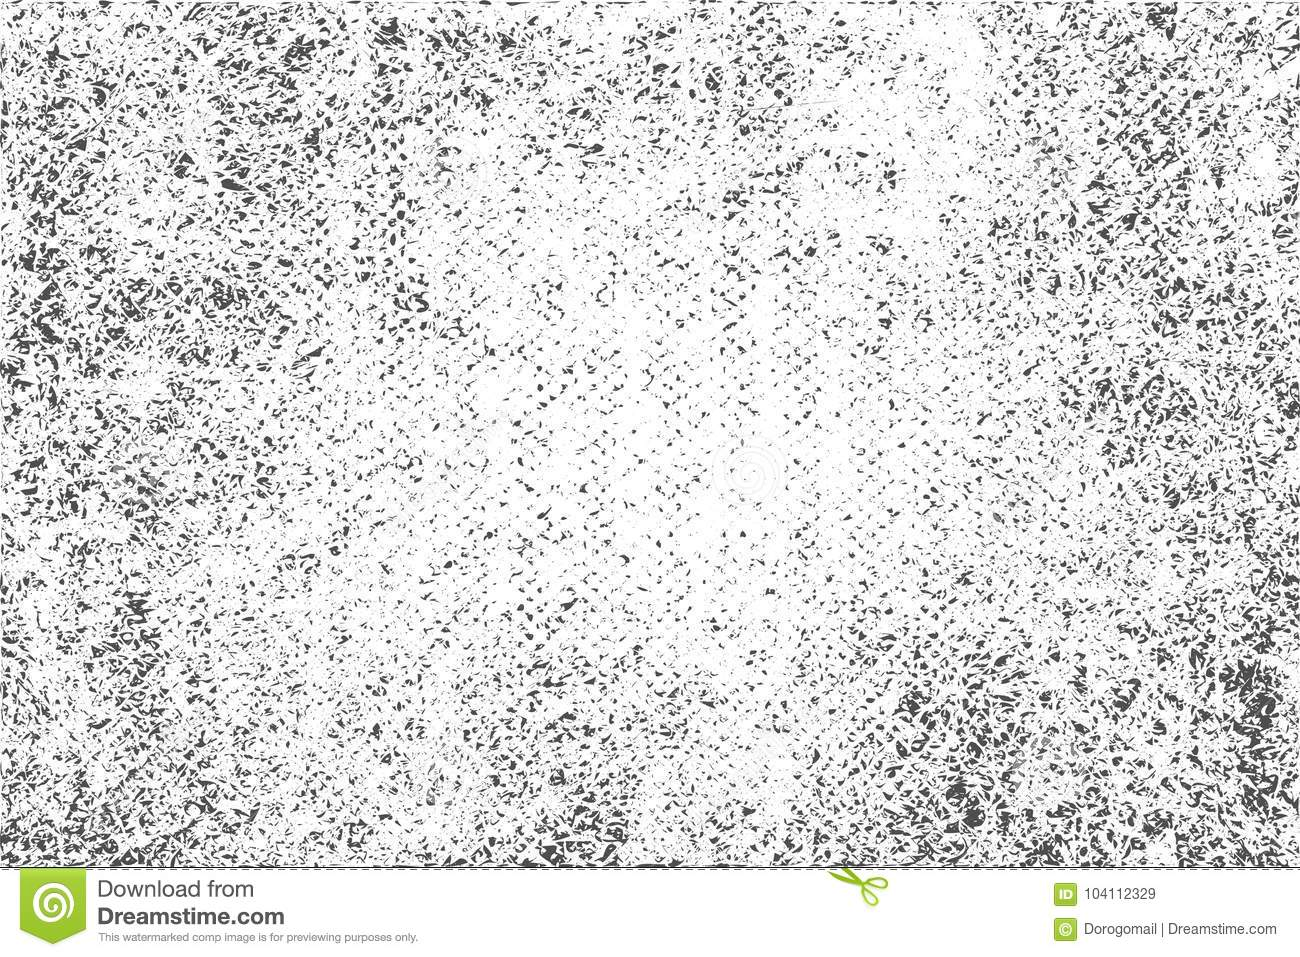 Distress, Dirt Texture  Vector Illustration  Grunge Background